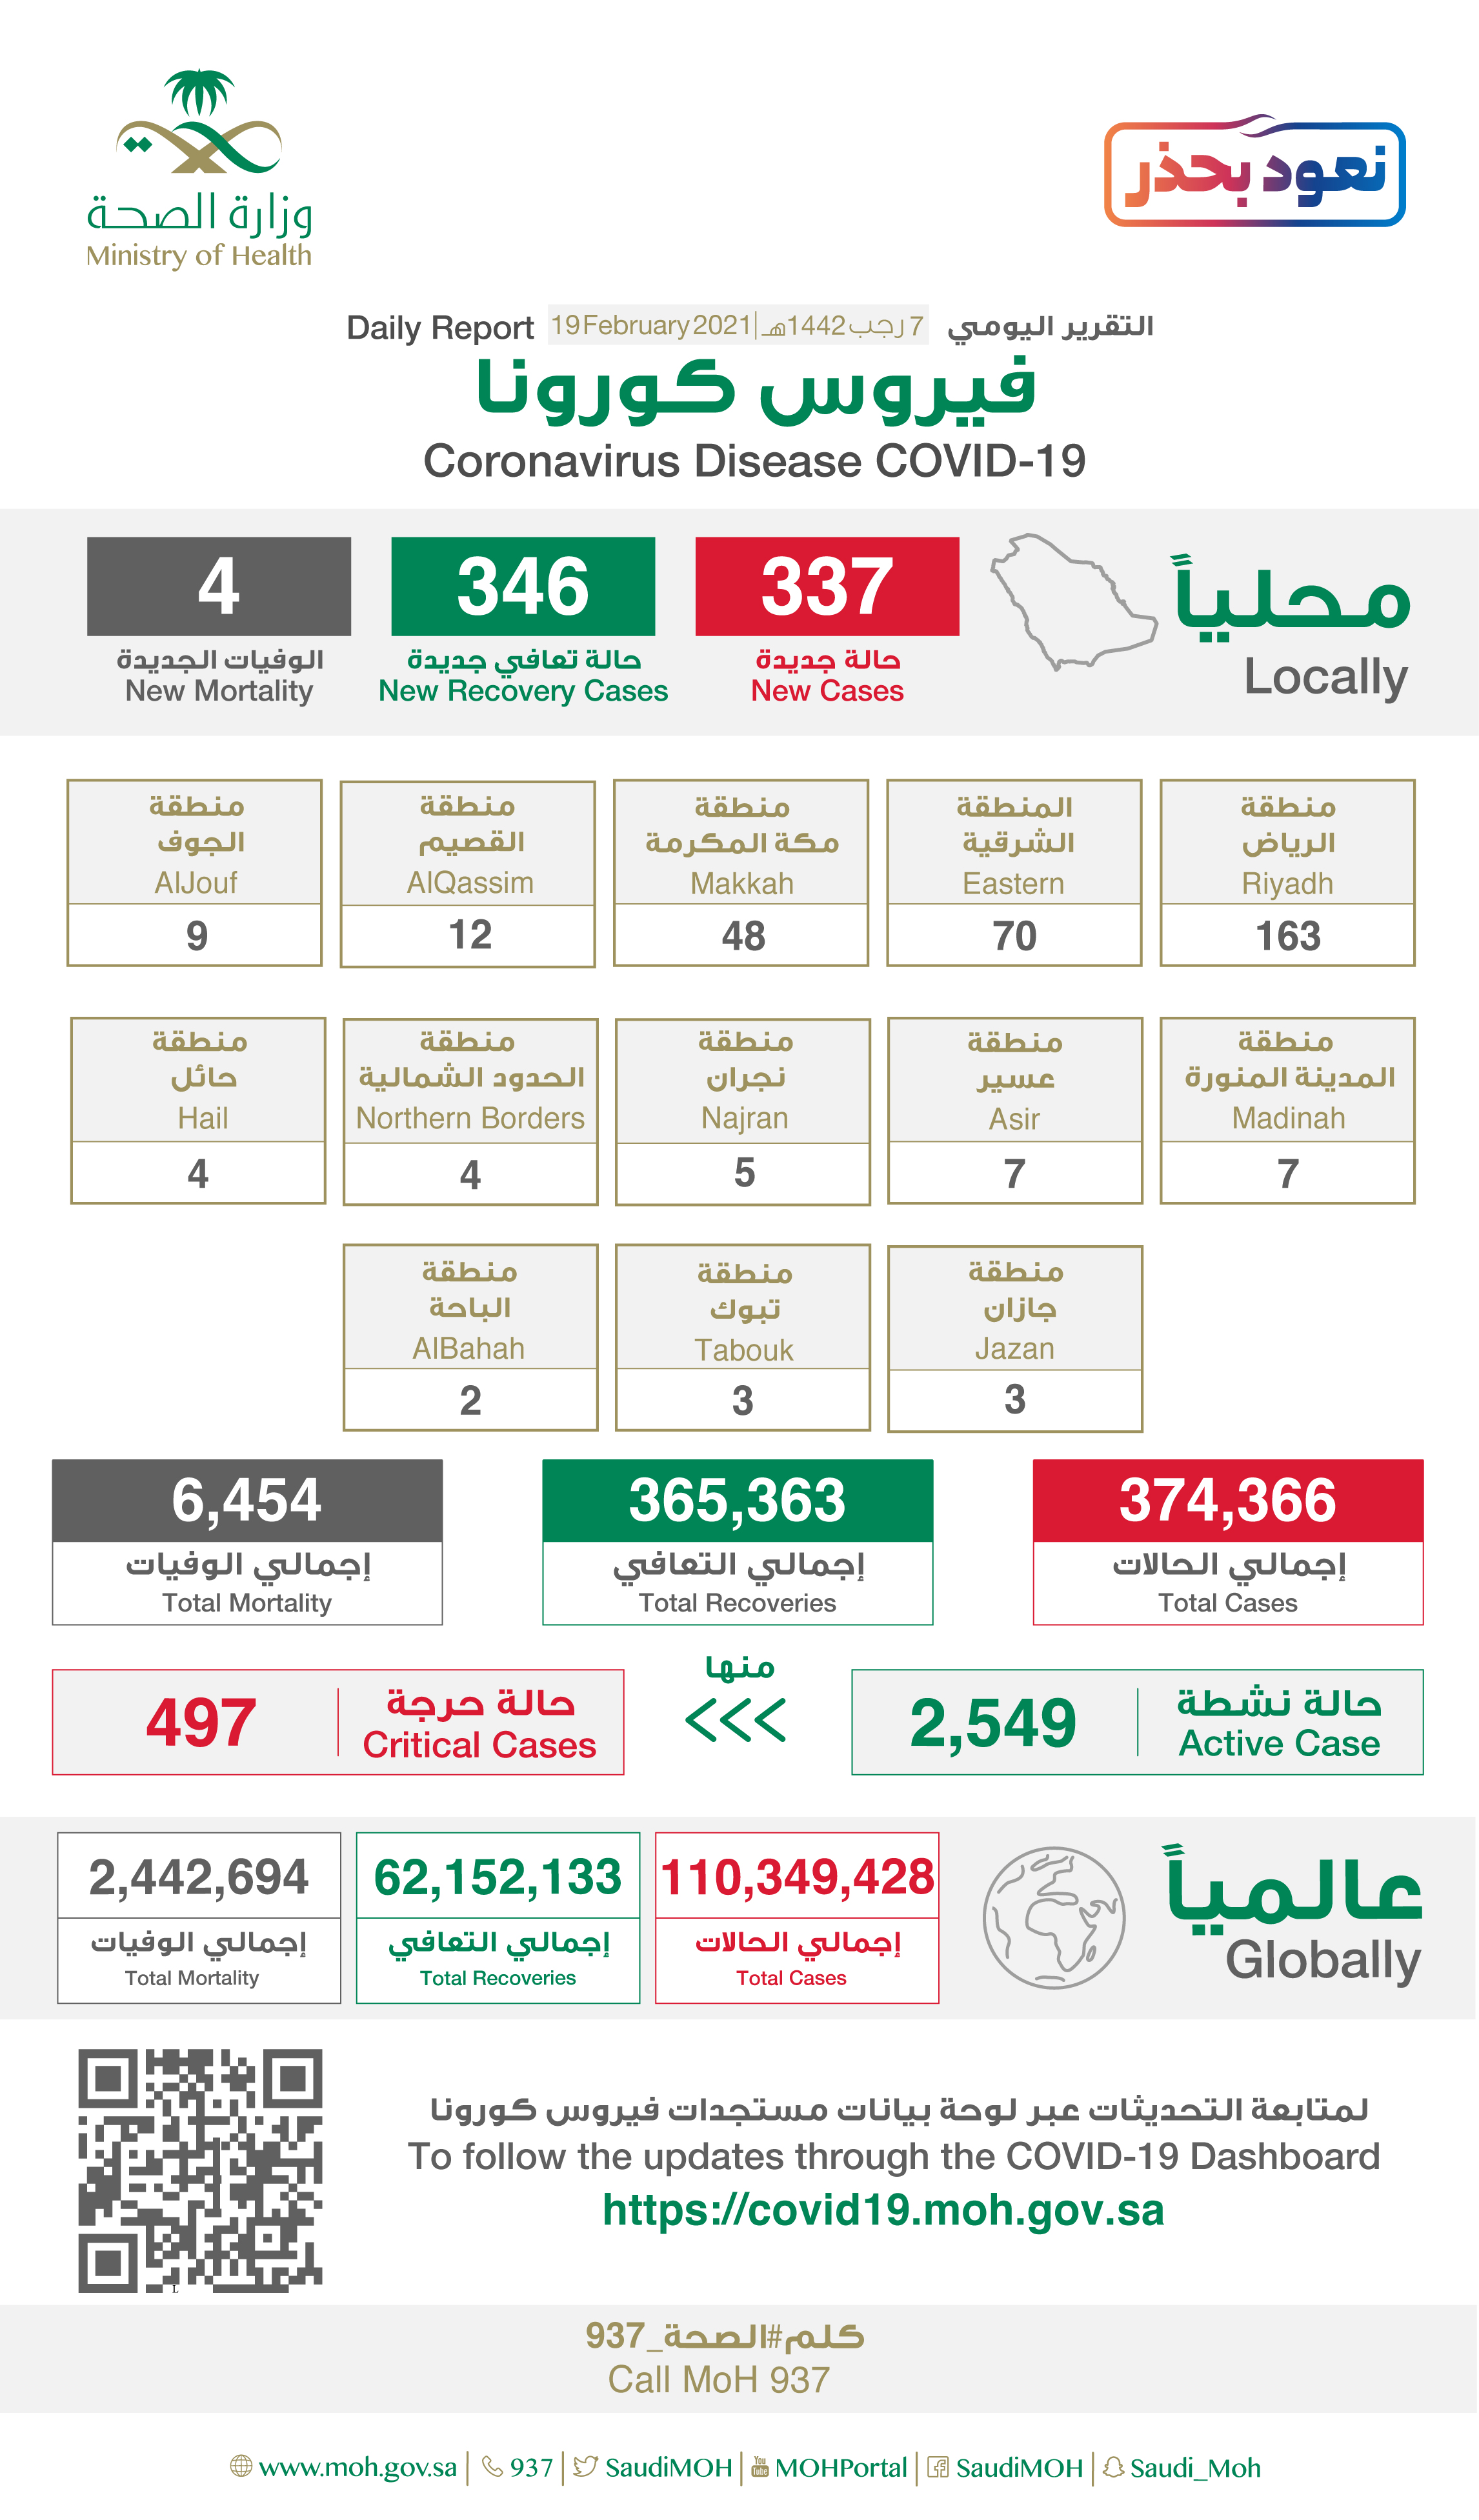 Saudi Arabia Coronavirus : Total Cases :374,366 , New Cases : 337, Cured : 365,363 , Deaths: 6,454, Active Cases : 2,549